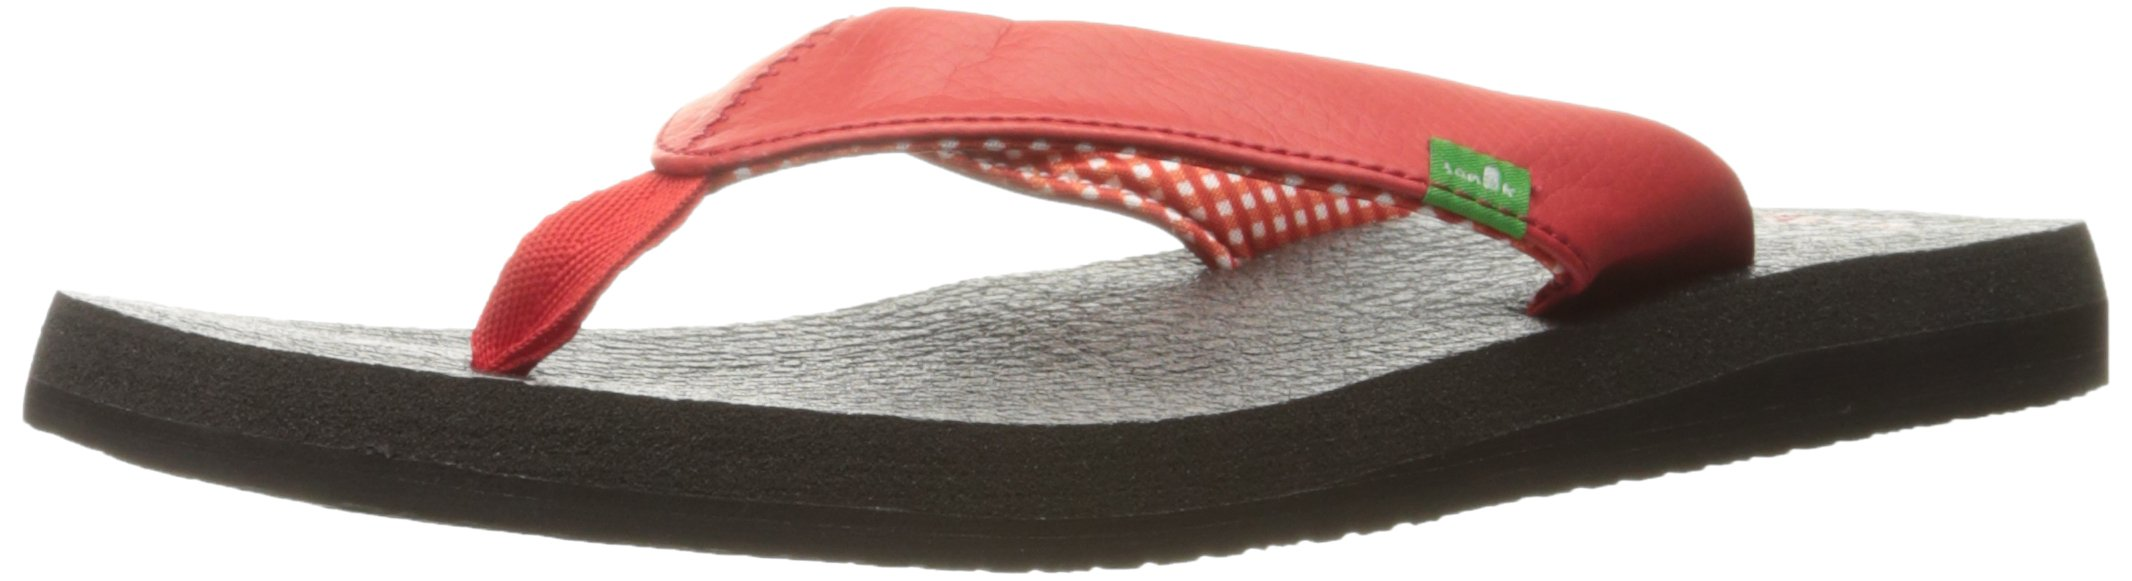 Sanuk Women's Yoga Mat Flip Flop, Bright Red, 9 M US